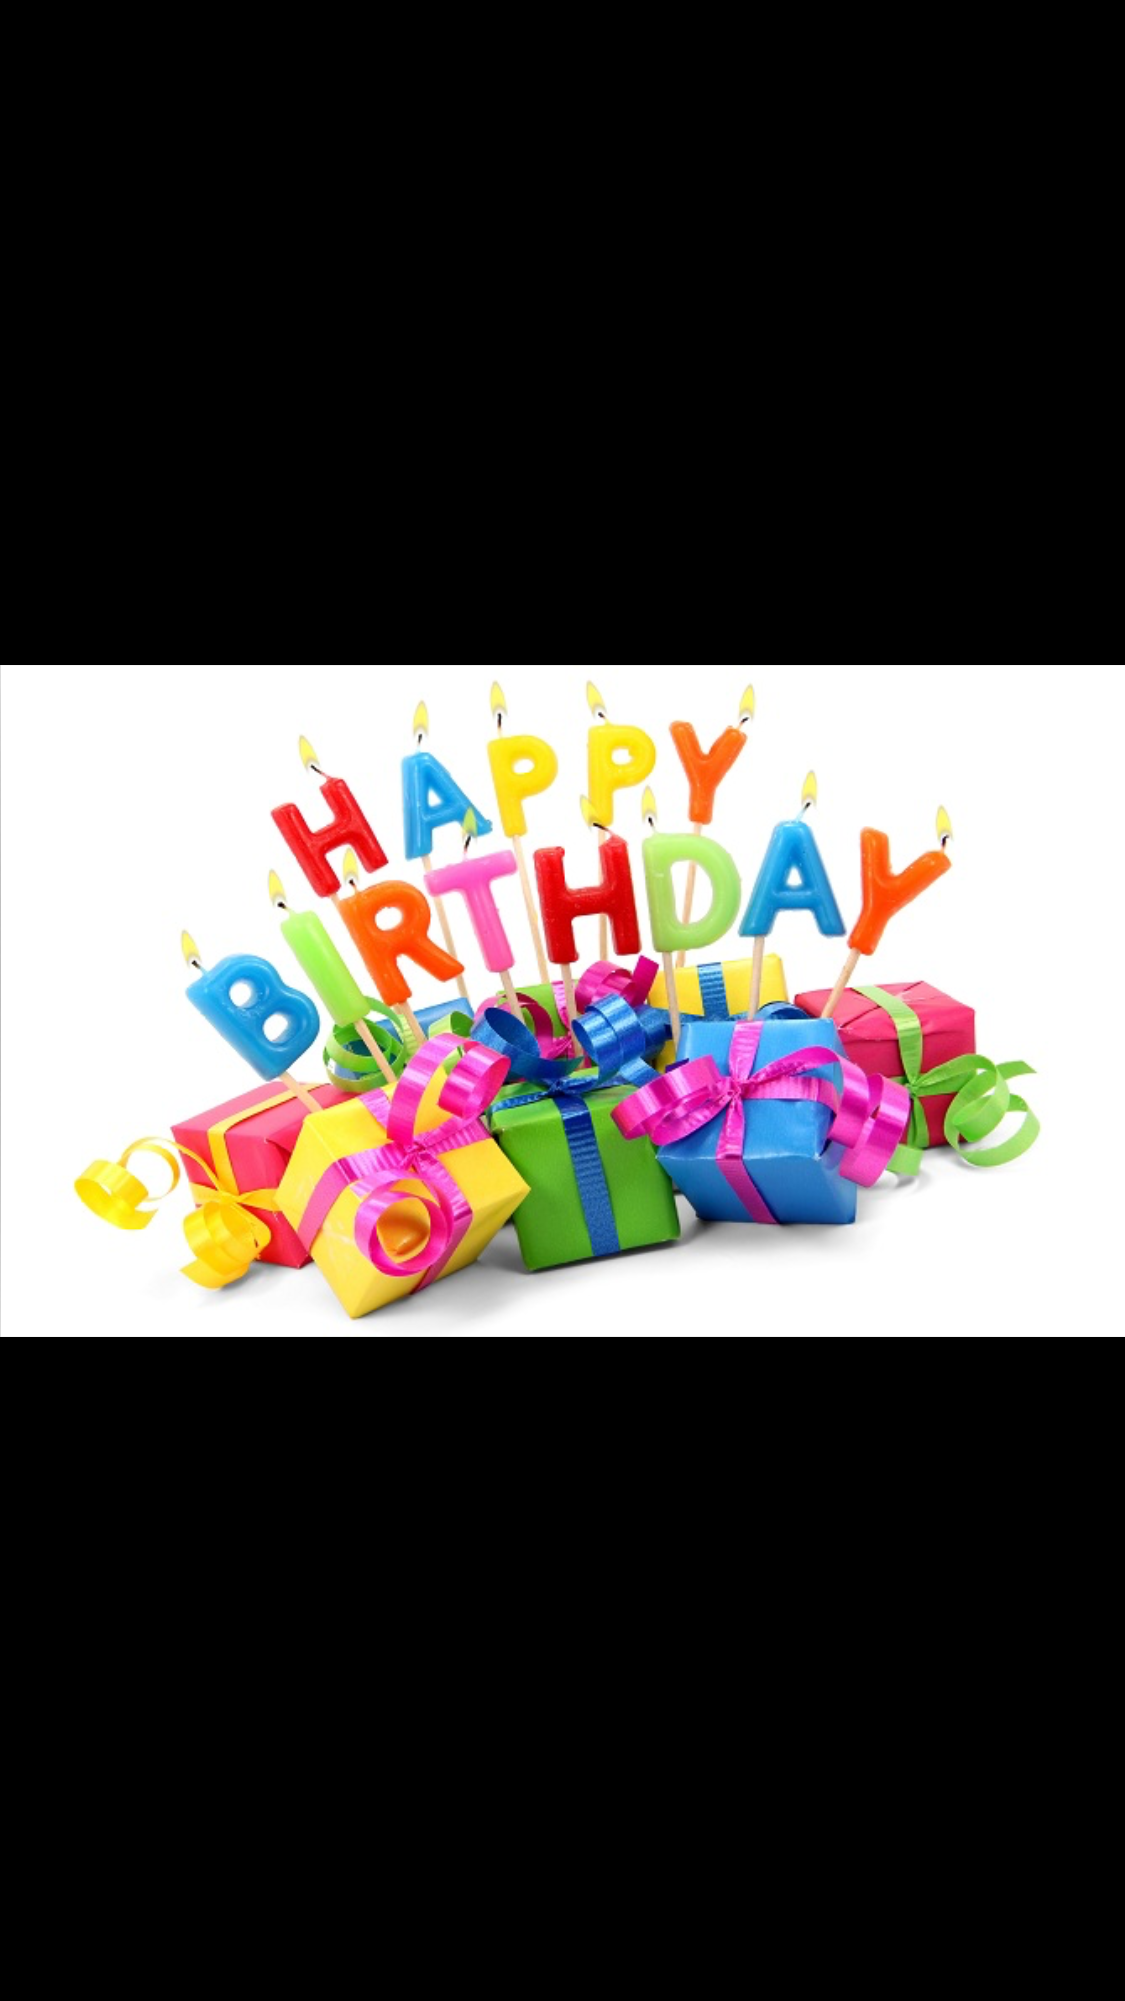 Pin By Antonette On Birthday Memes Messages Happy Birthday Gifts Happy Birthday Video Happy Birthday Ecard